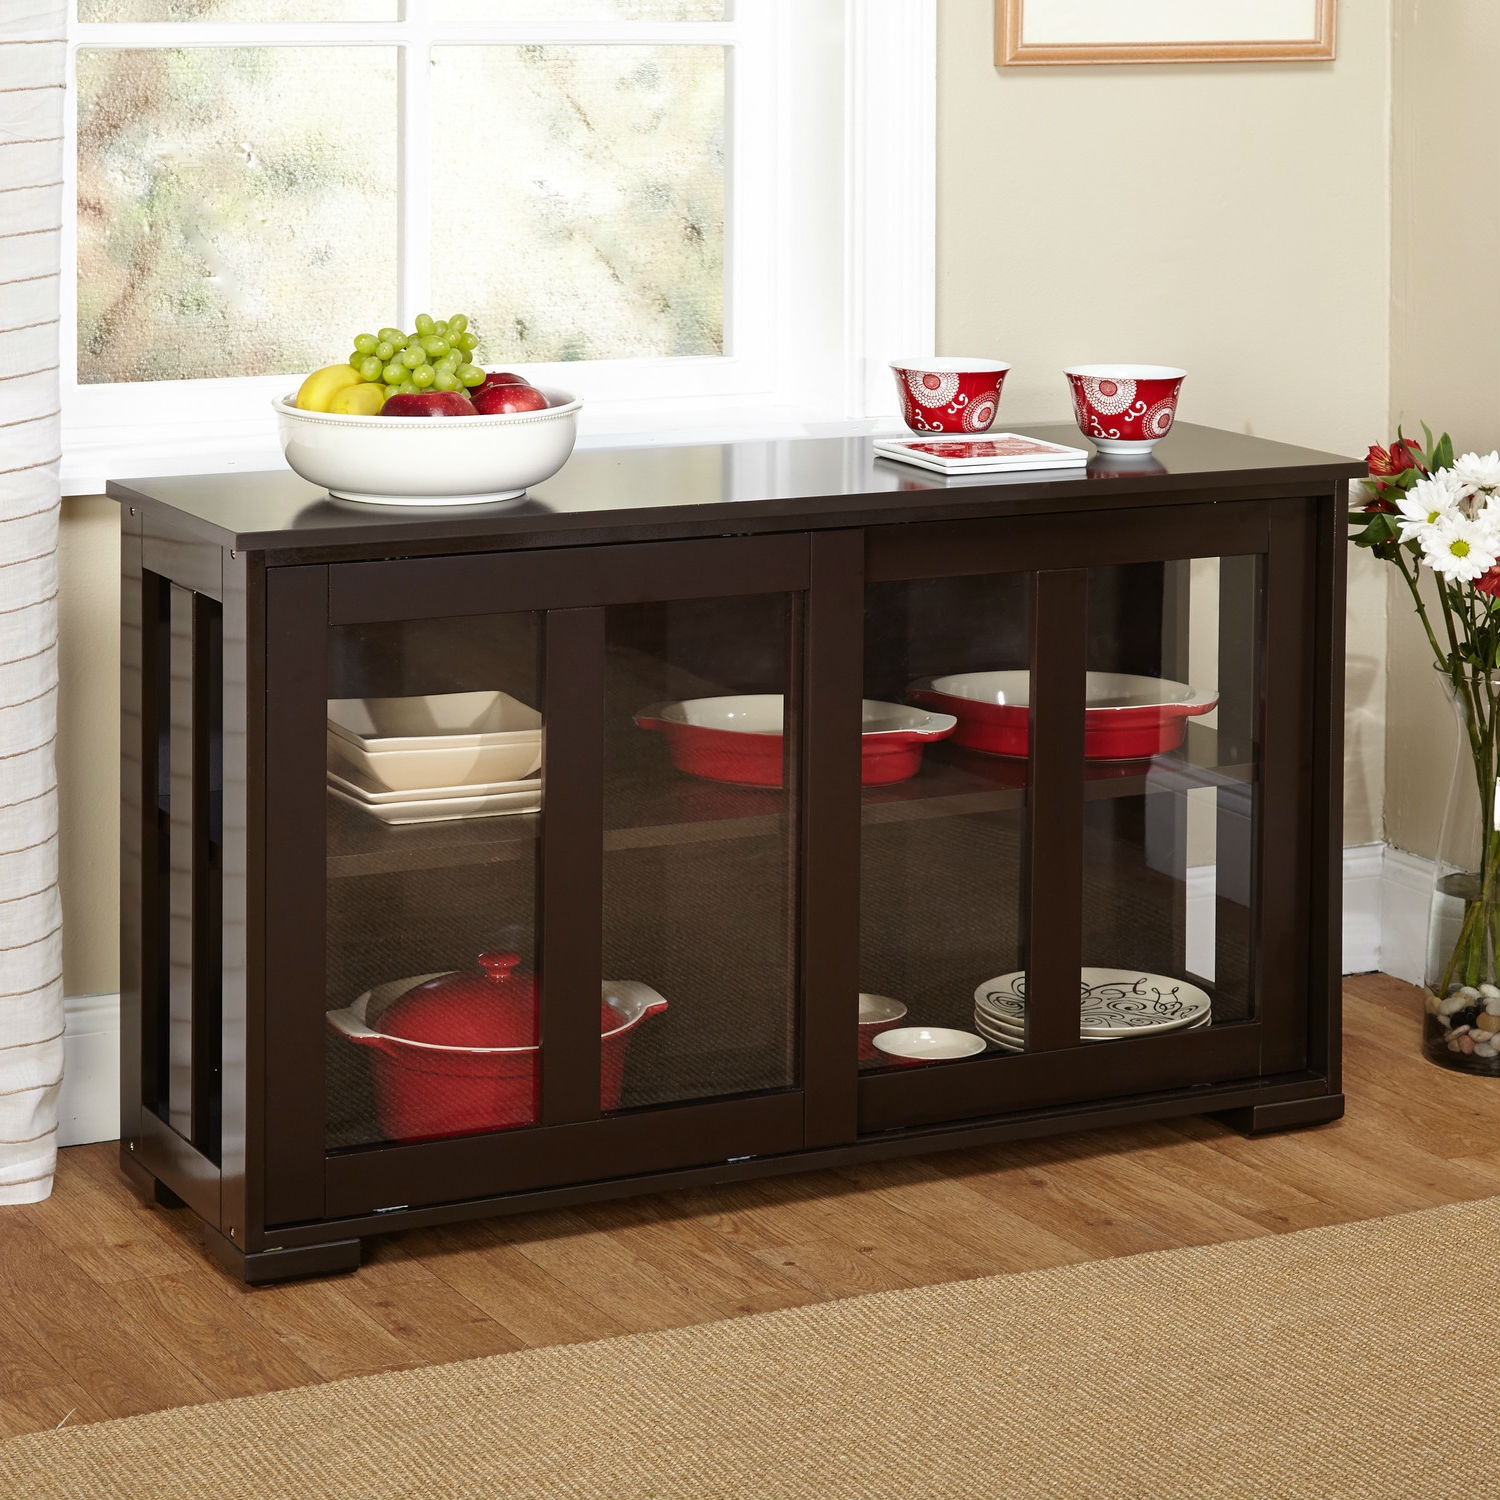 Espresso Sideboard Buffet Dining Kitchen Cabinet With 2 Gl Sliding Doors